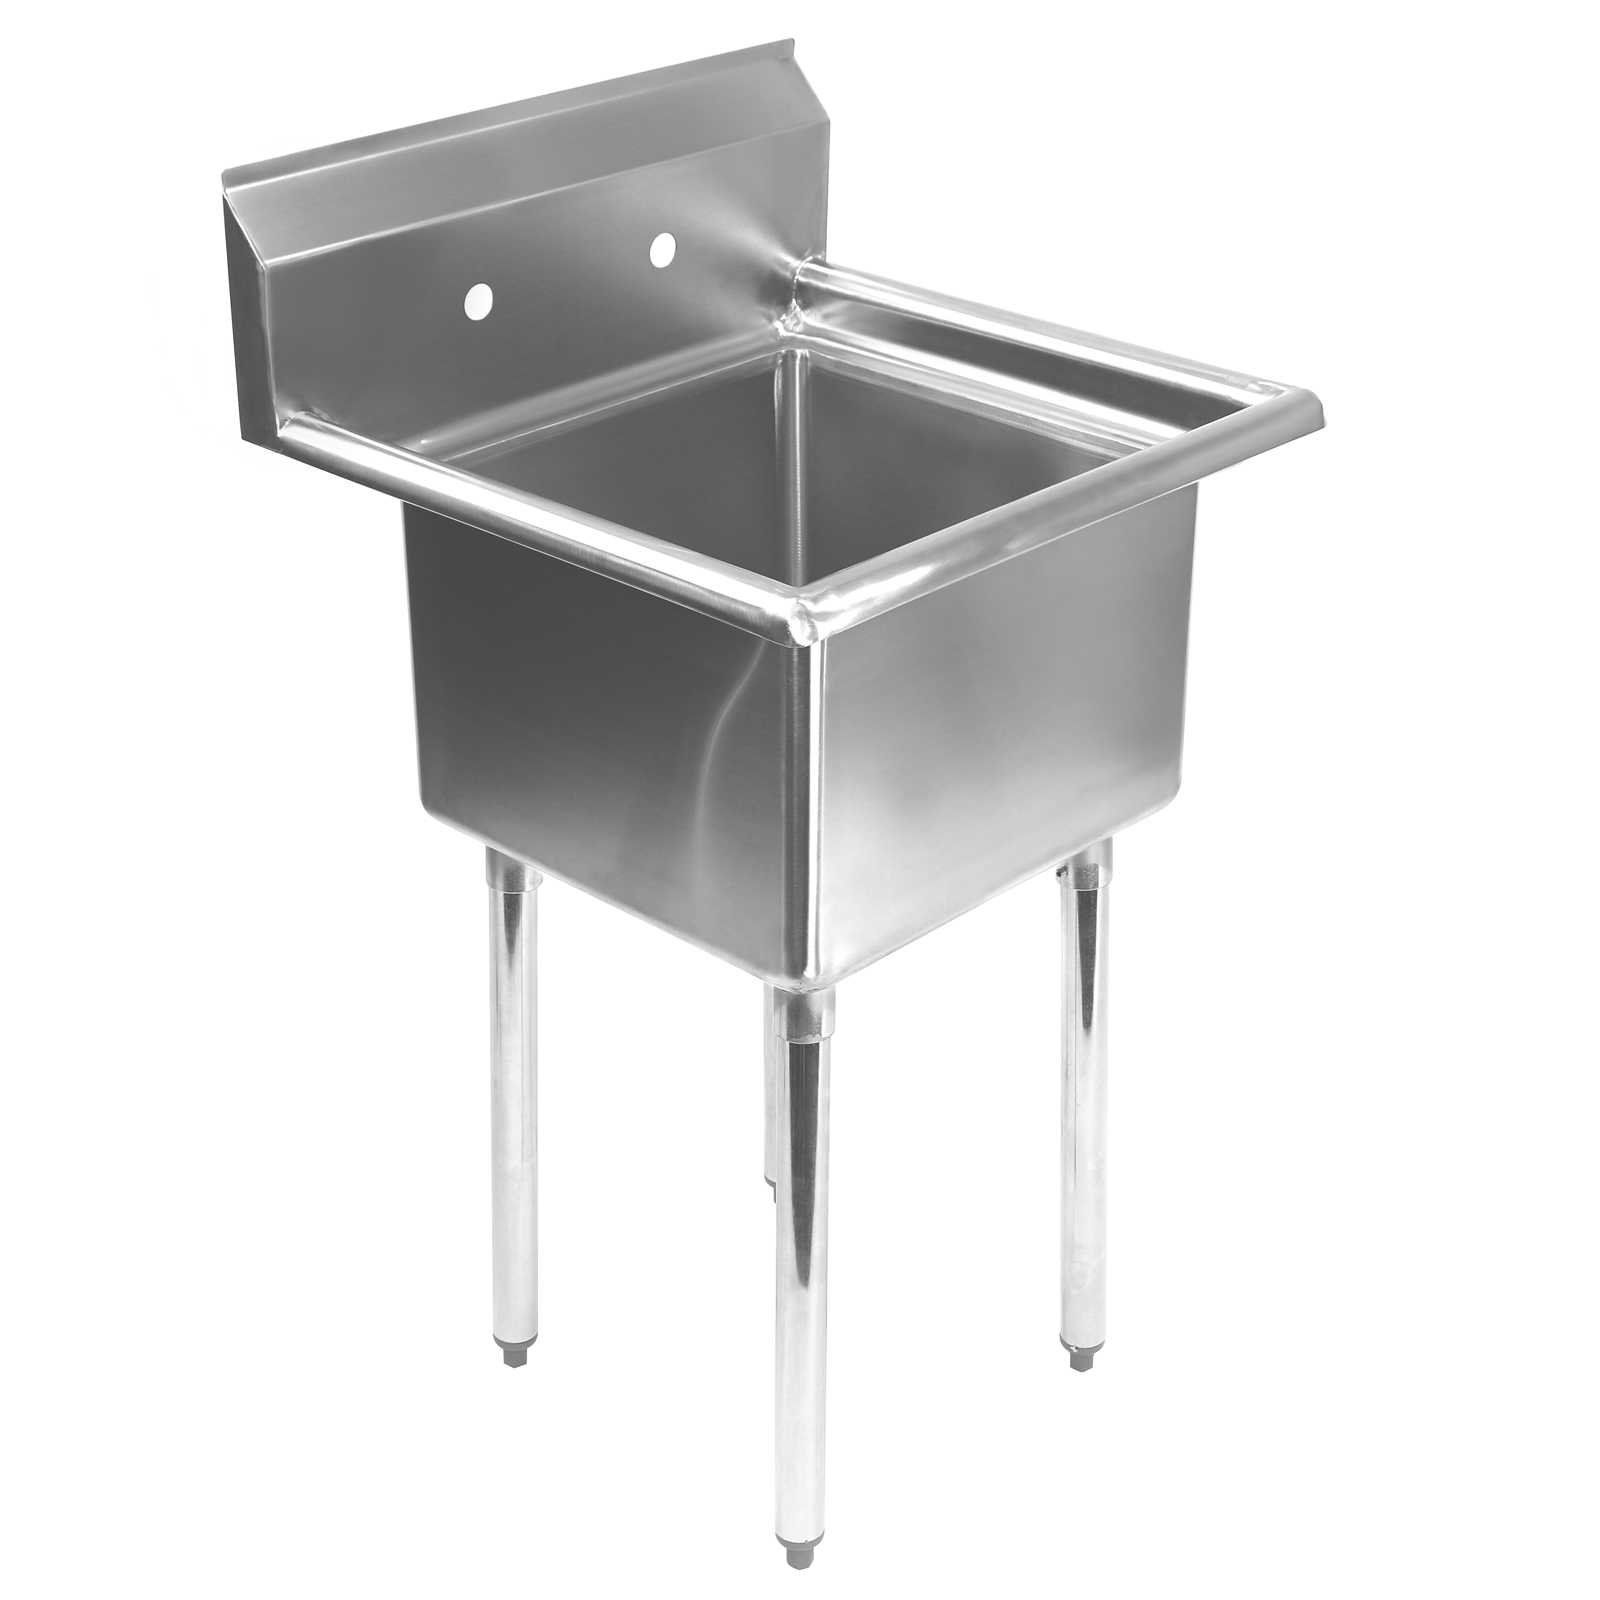 Utility Sink: $203 Amazon   Gridmann 1 Compartment Stainless Steel  Commercial Kitchen Prep U0026 Utility